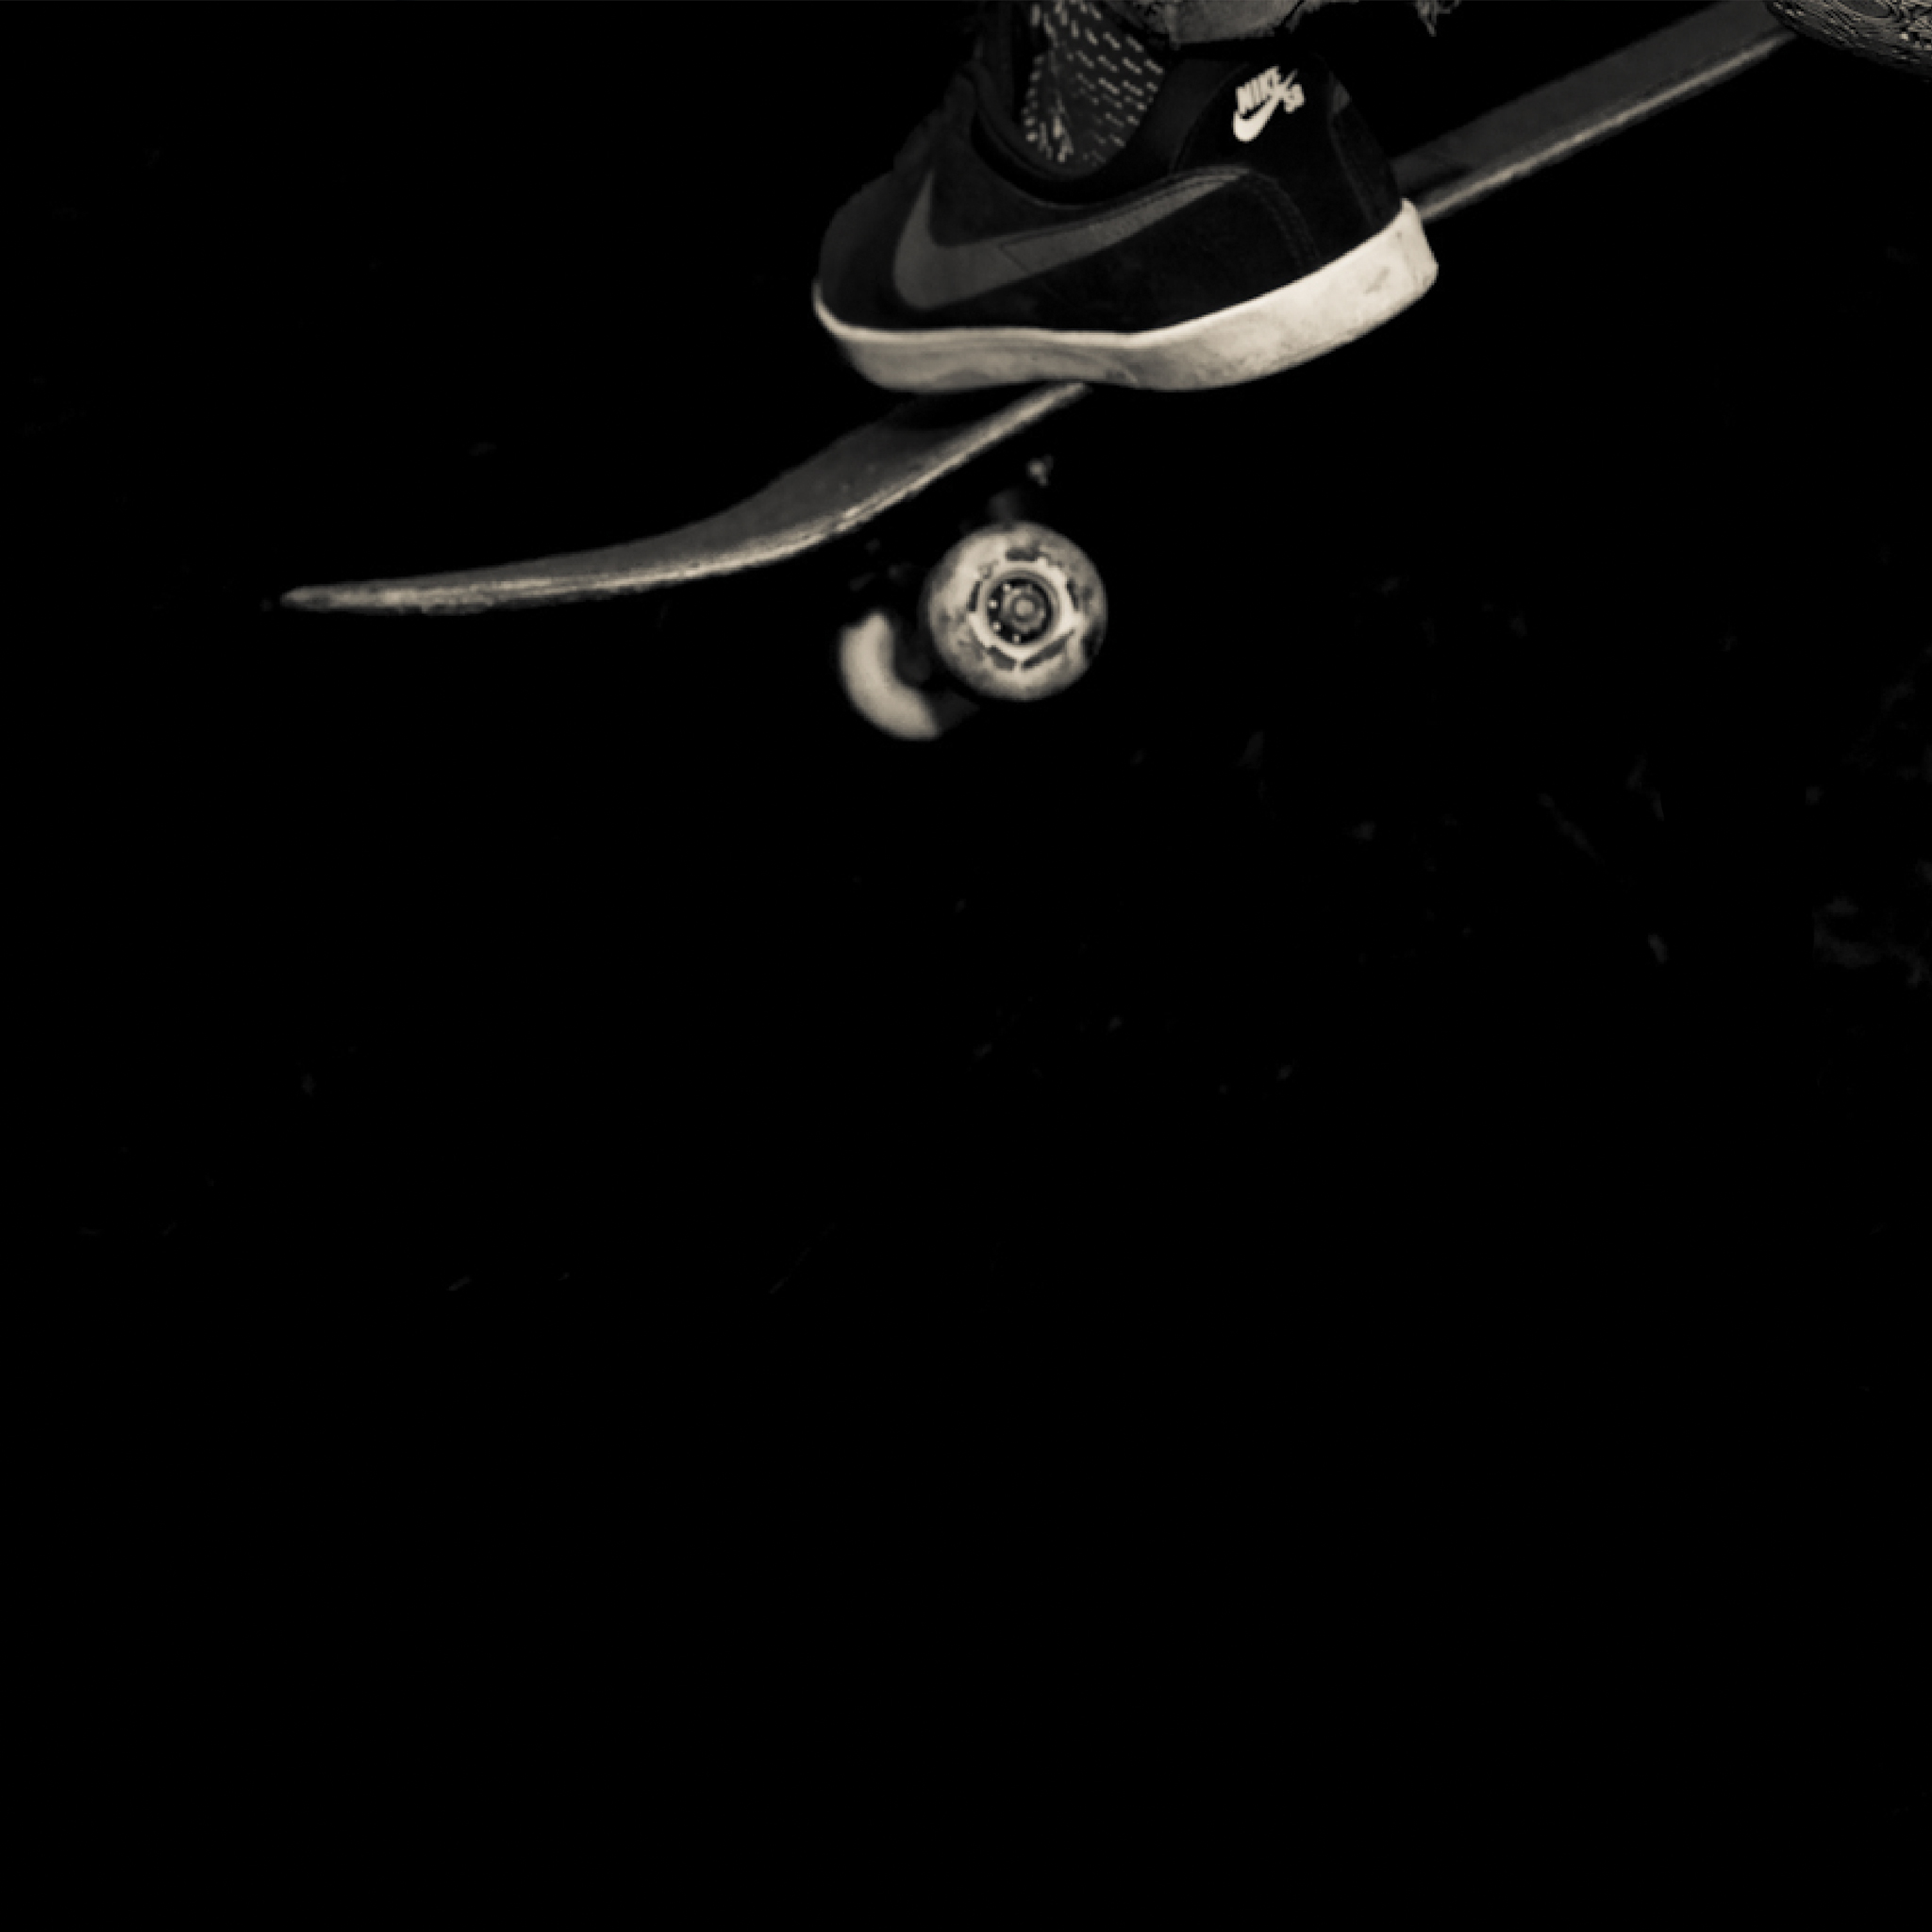 Nike-Skateboard-3Wallpapers